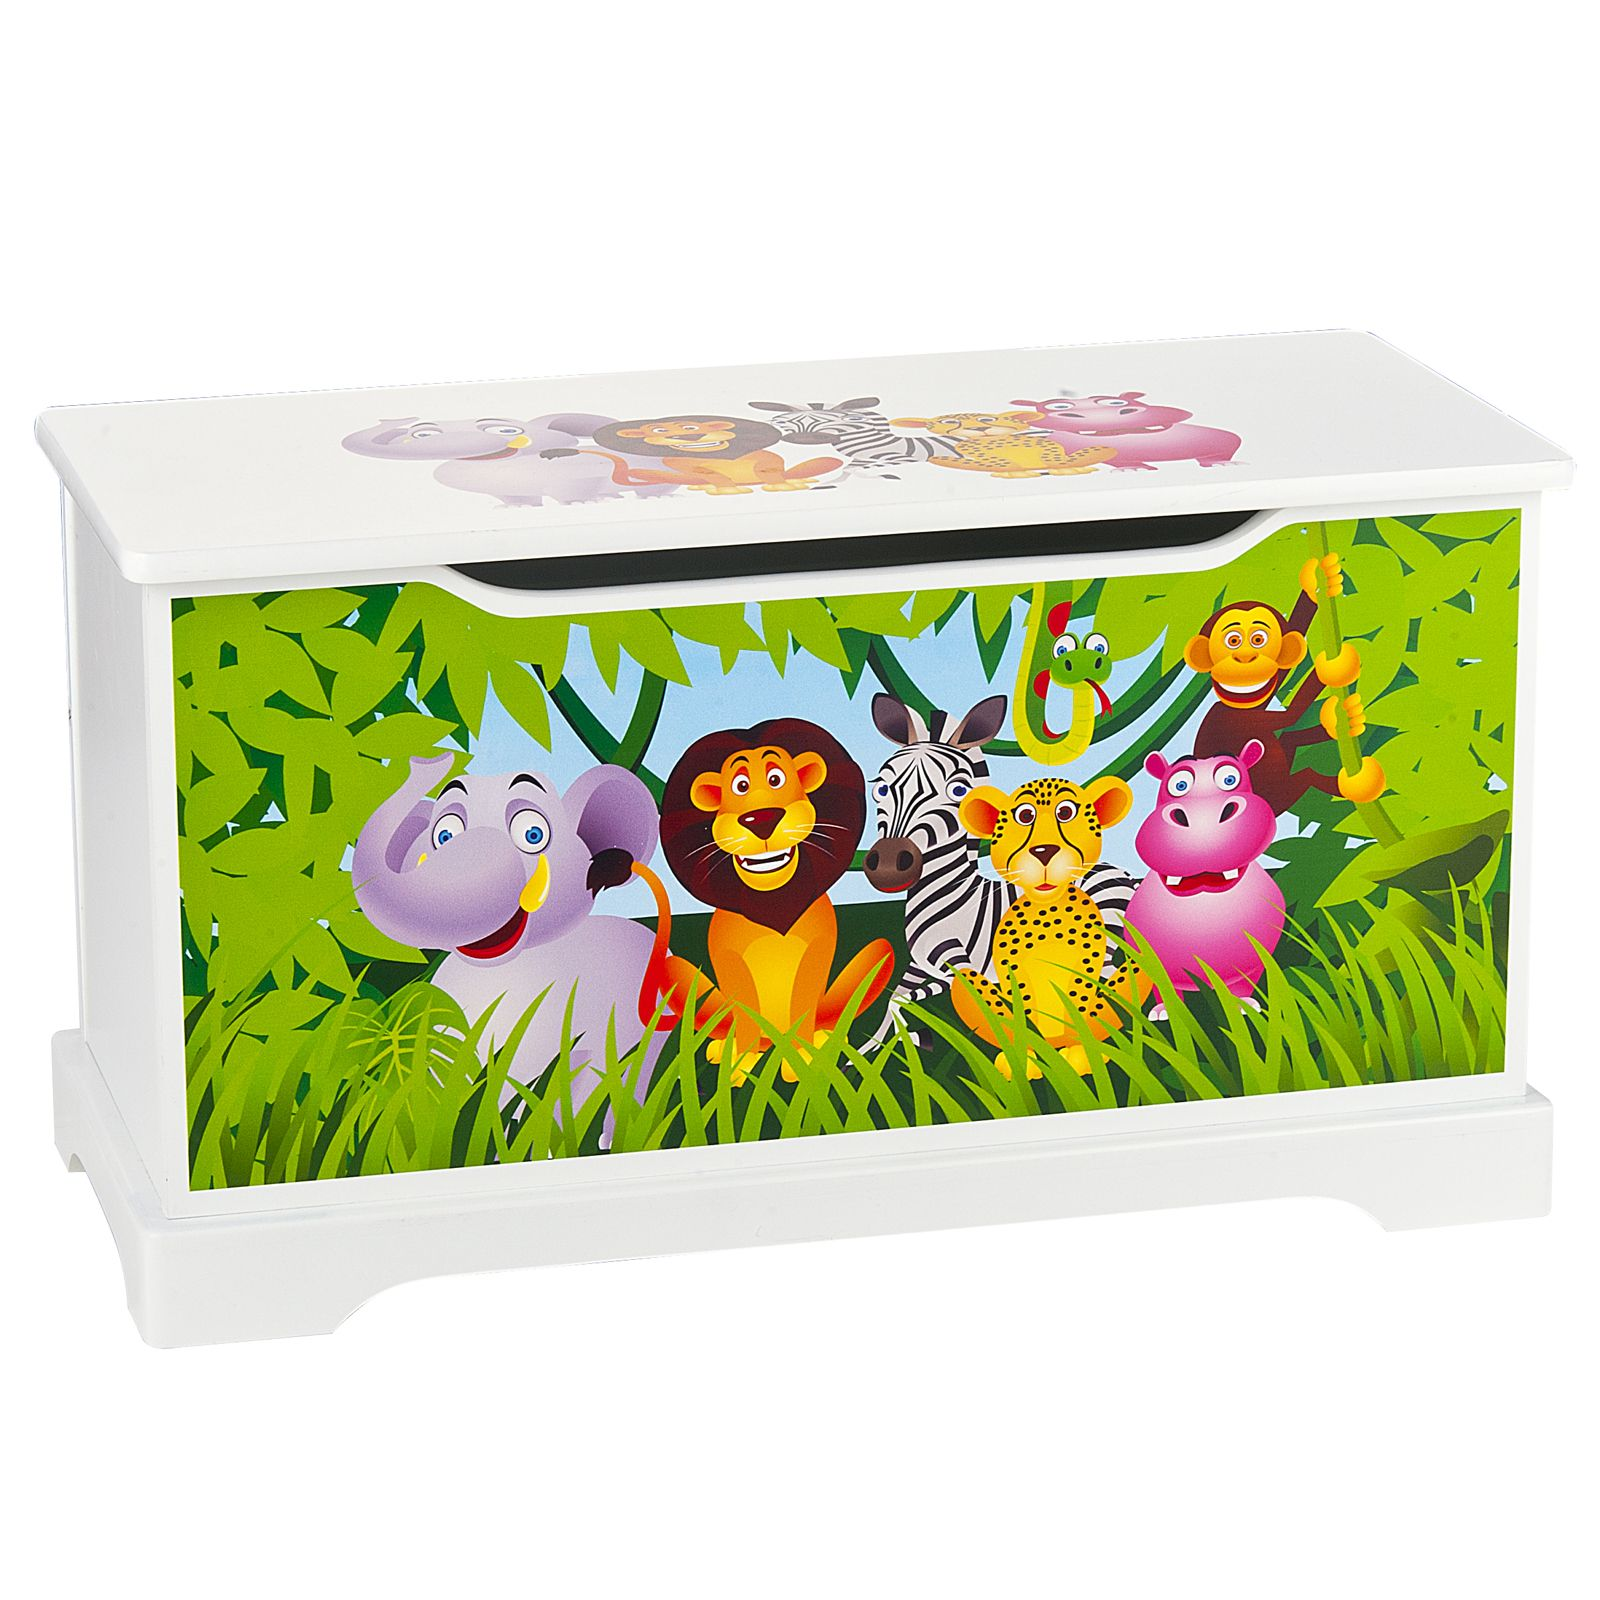 Jungle Animals Wooden Bedroom Furniture Kids Toy Box